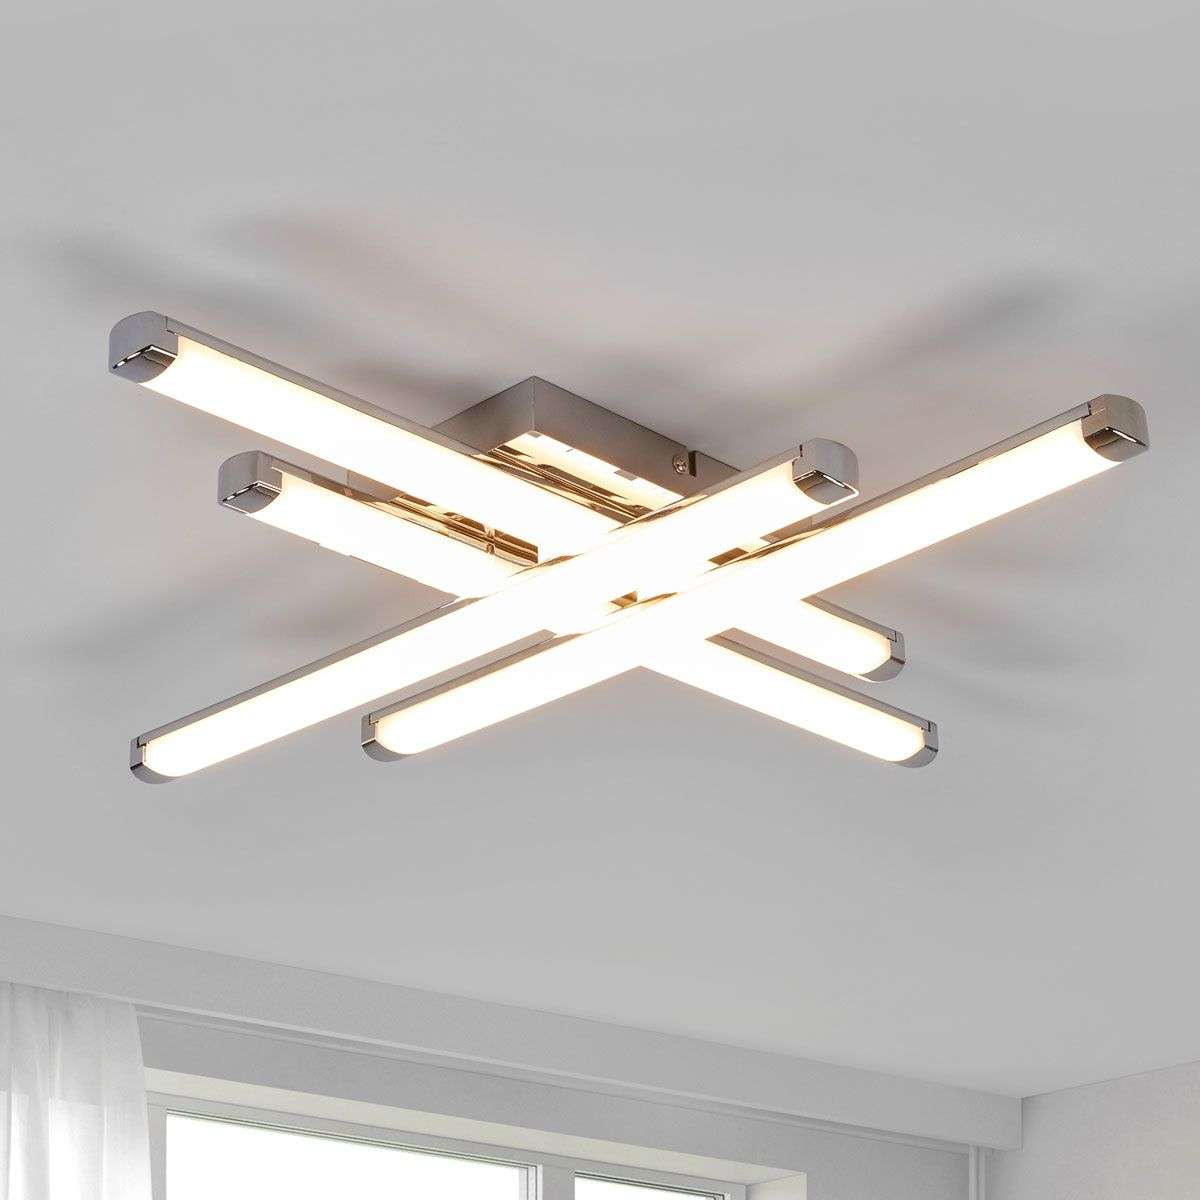 ceiling lighting smart twist steel image led brushed finish light lights modern polina effect in contemporary